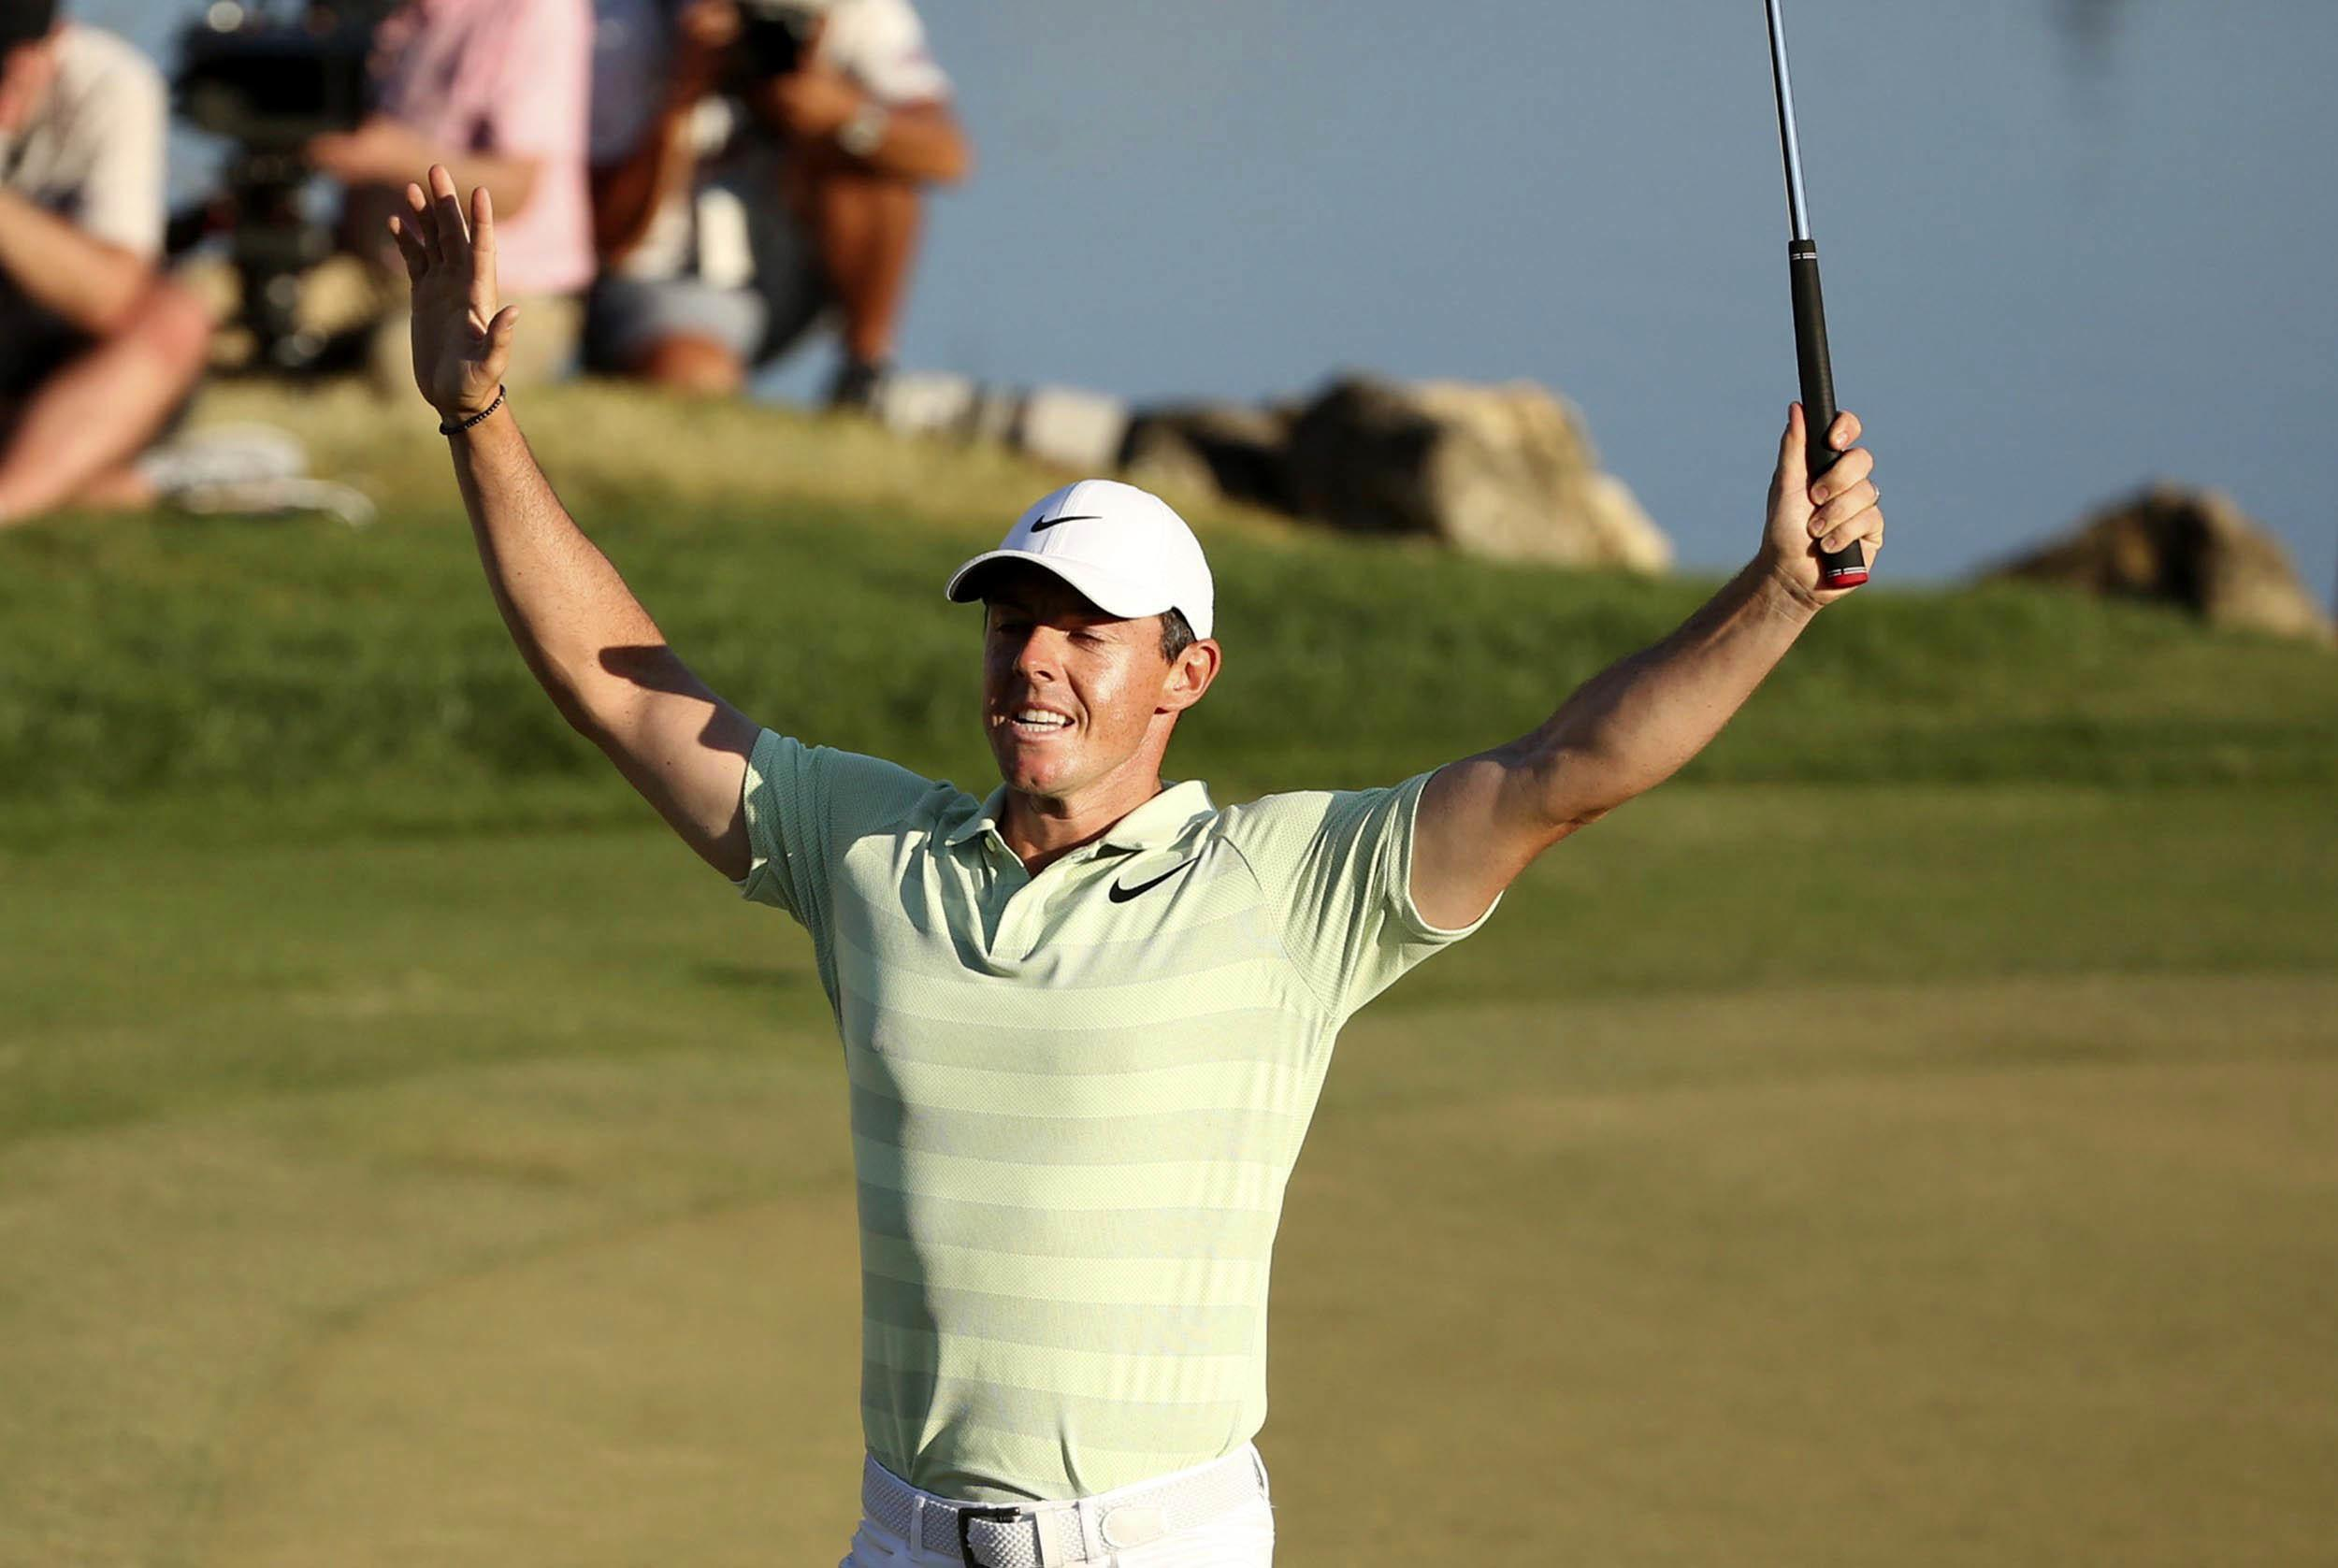 The four-time Major champ ended his 18-month win drought over the weekend